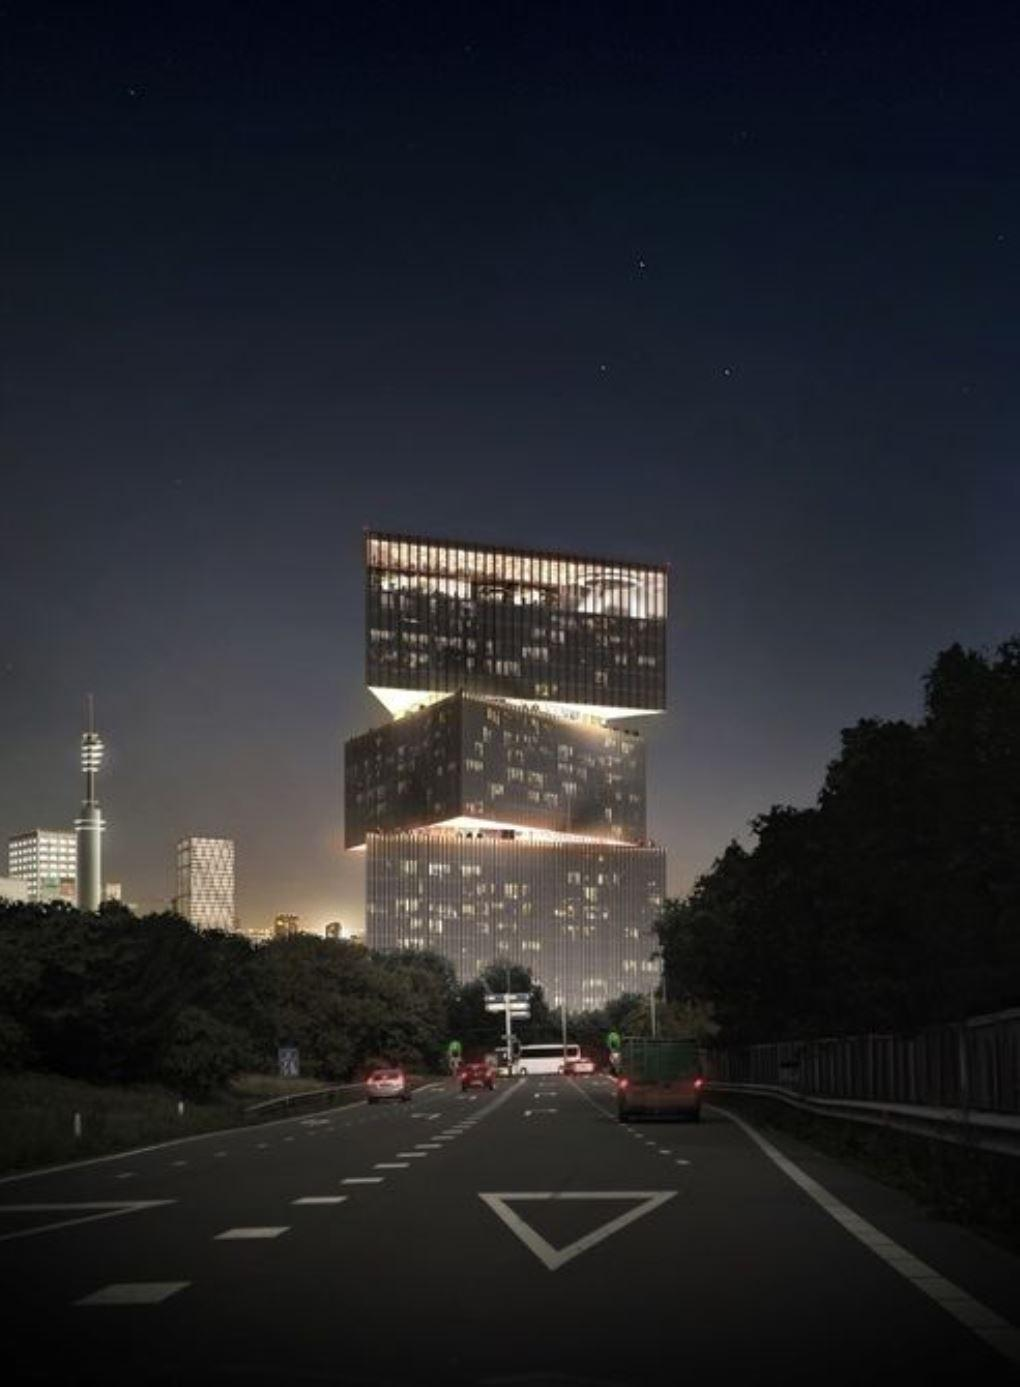 artist_impression_rai_hotel_by_night_vanaf_a10_afrit_s109